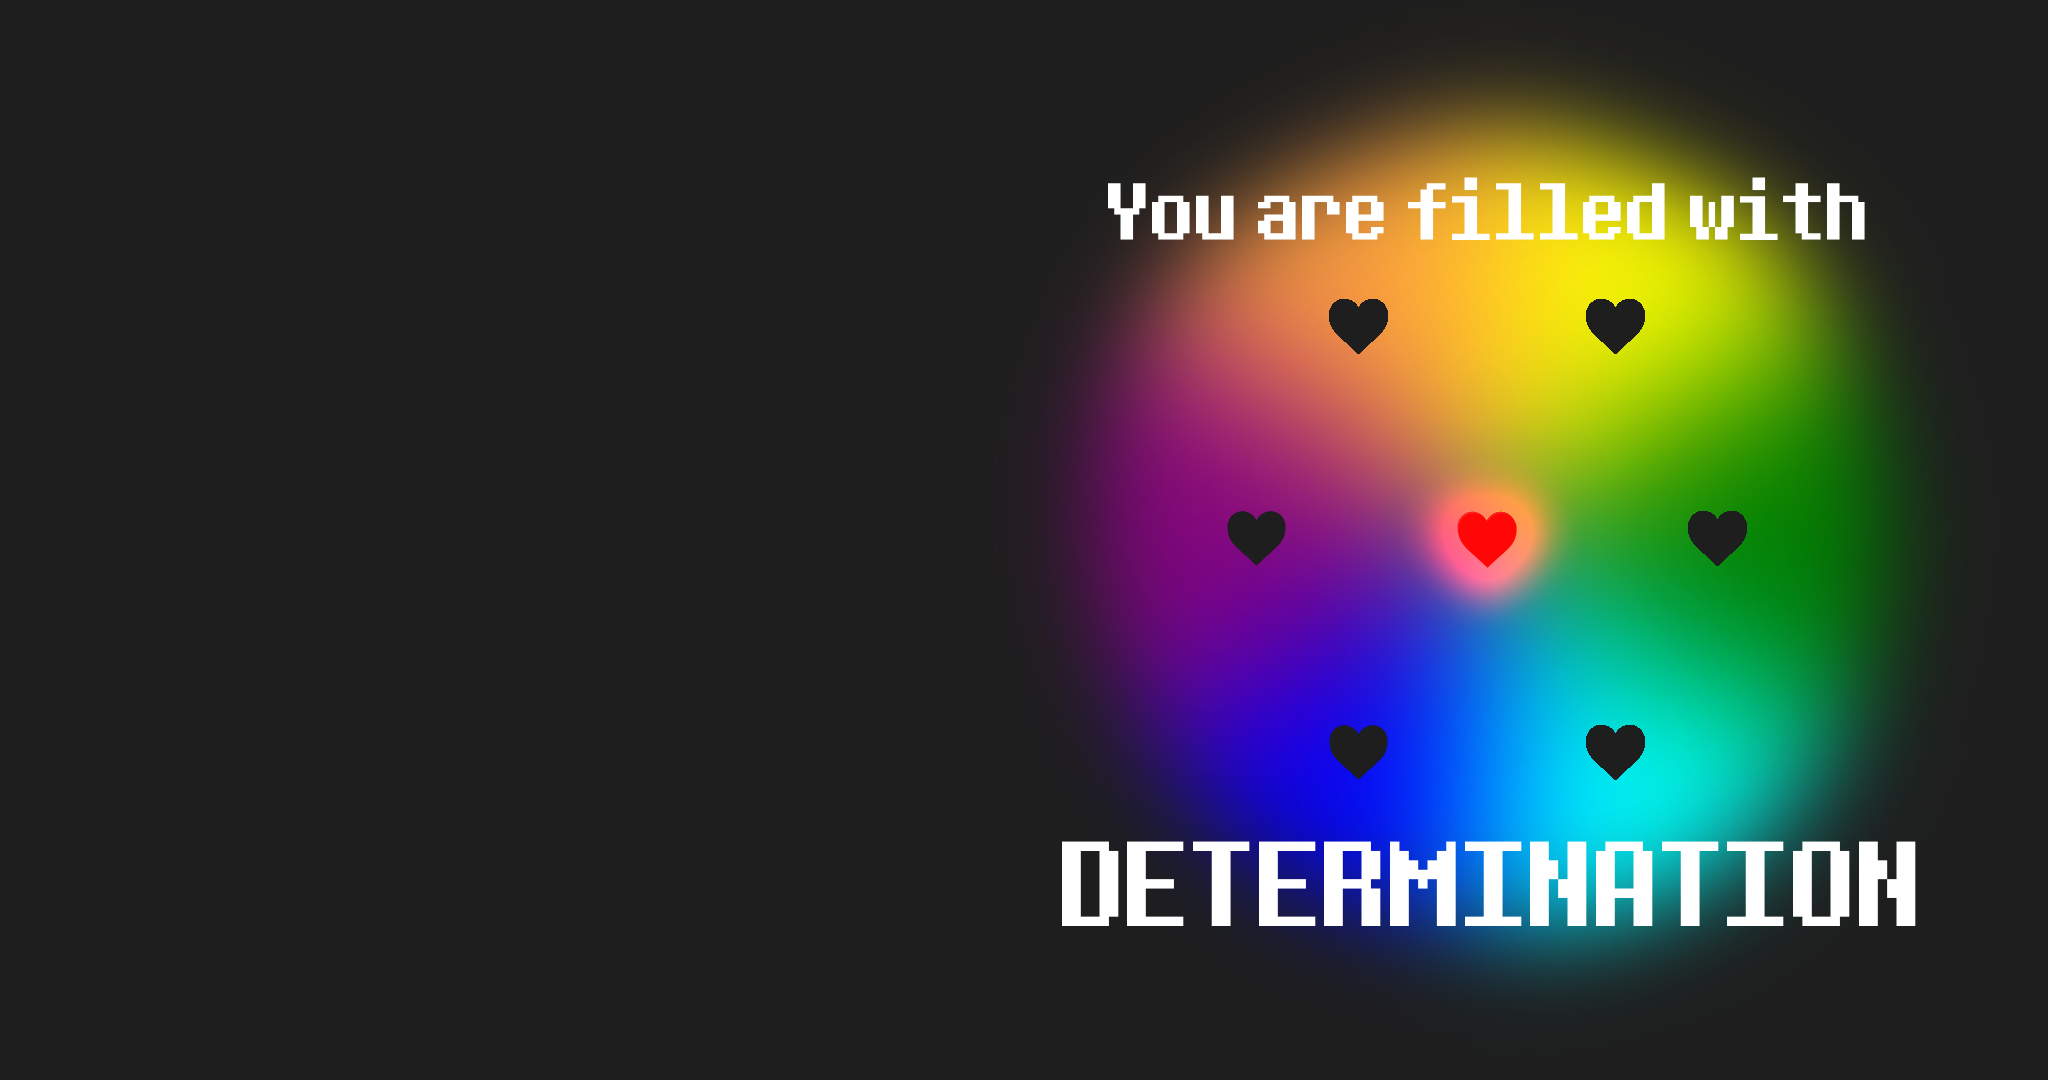 determination undertale wallpaper pack by quinlinn